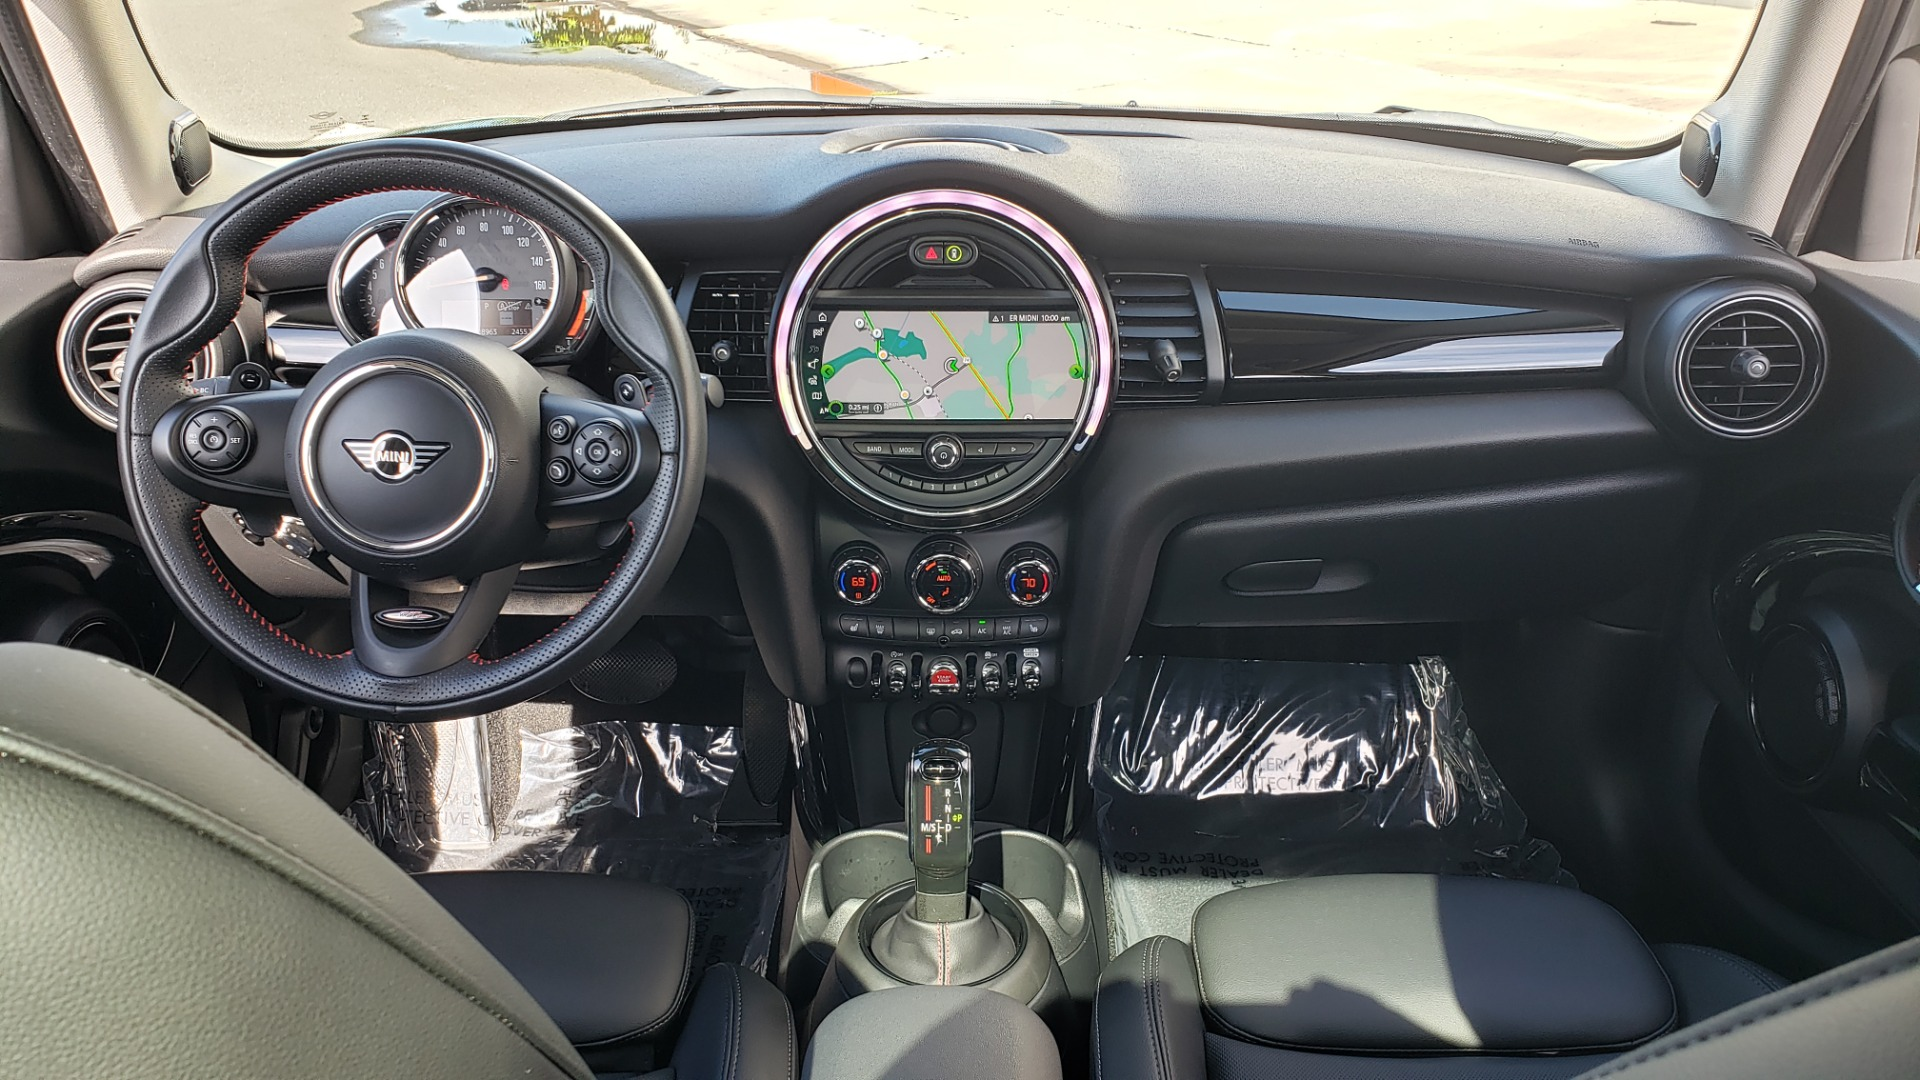 Used 2020 MINI HARDTOP 4 DOOR COOPER S / NAV / SUNROOF / AUTO / H/K SND / REARVIEW for sale $28,495 at Formula Imports in Charlotte NC 28227 79